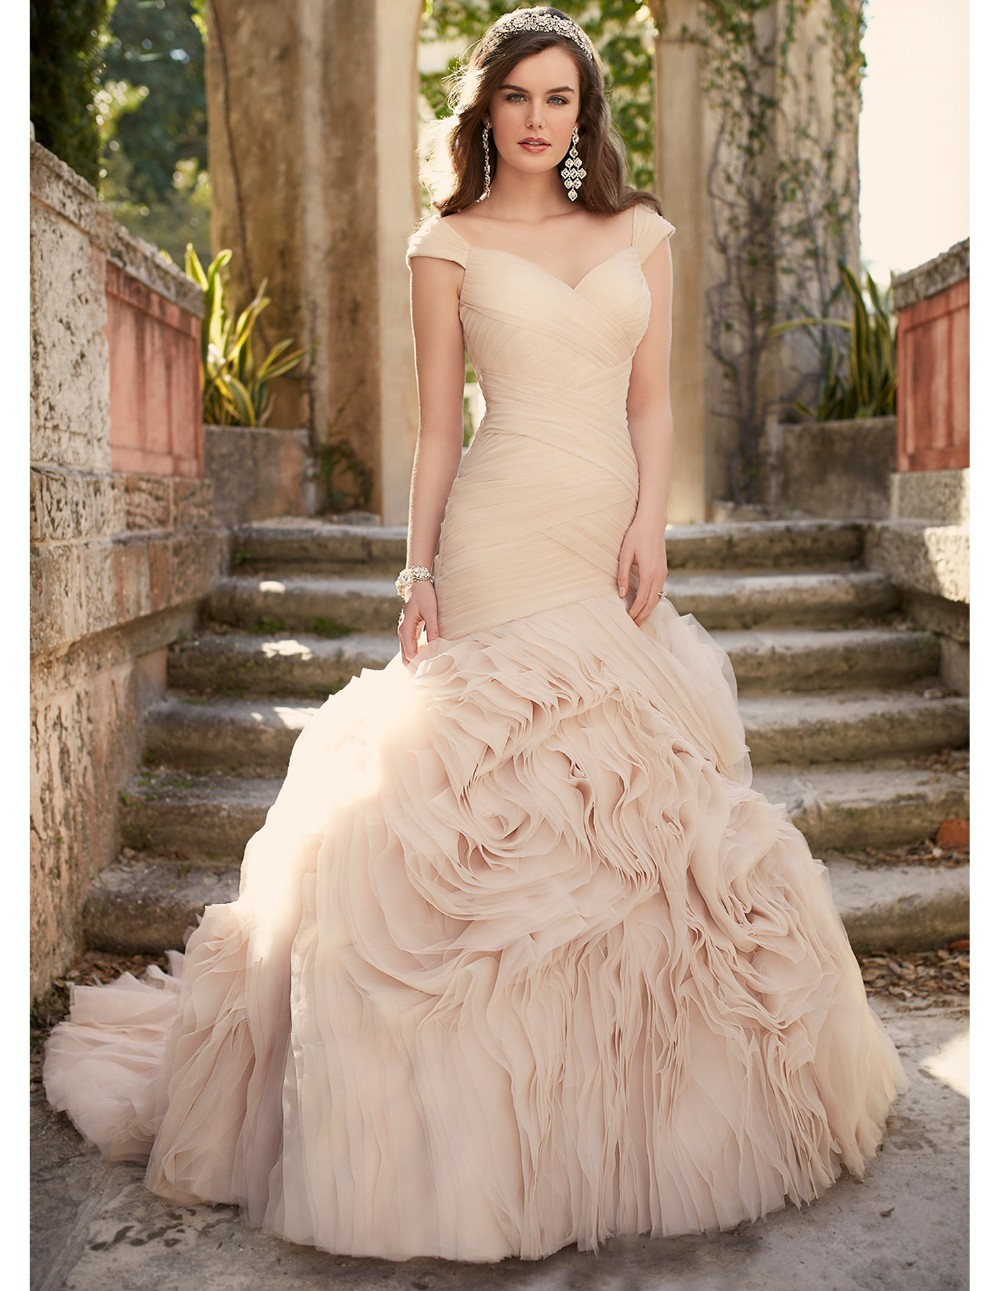 Pink Gowns Dress For Weddings  2016 blush pink wedding dresses cheap formal bridal